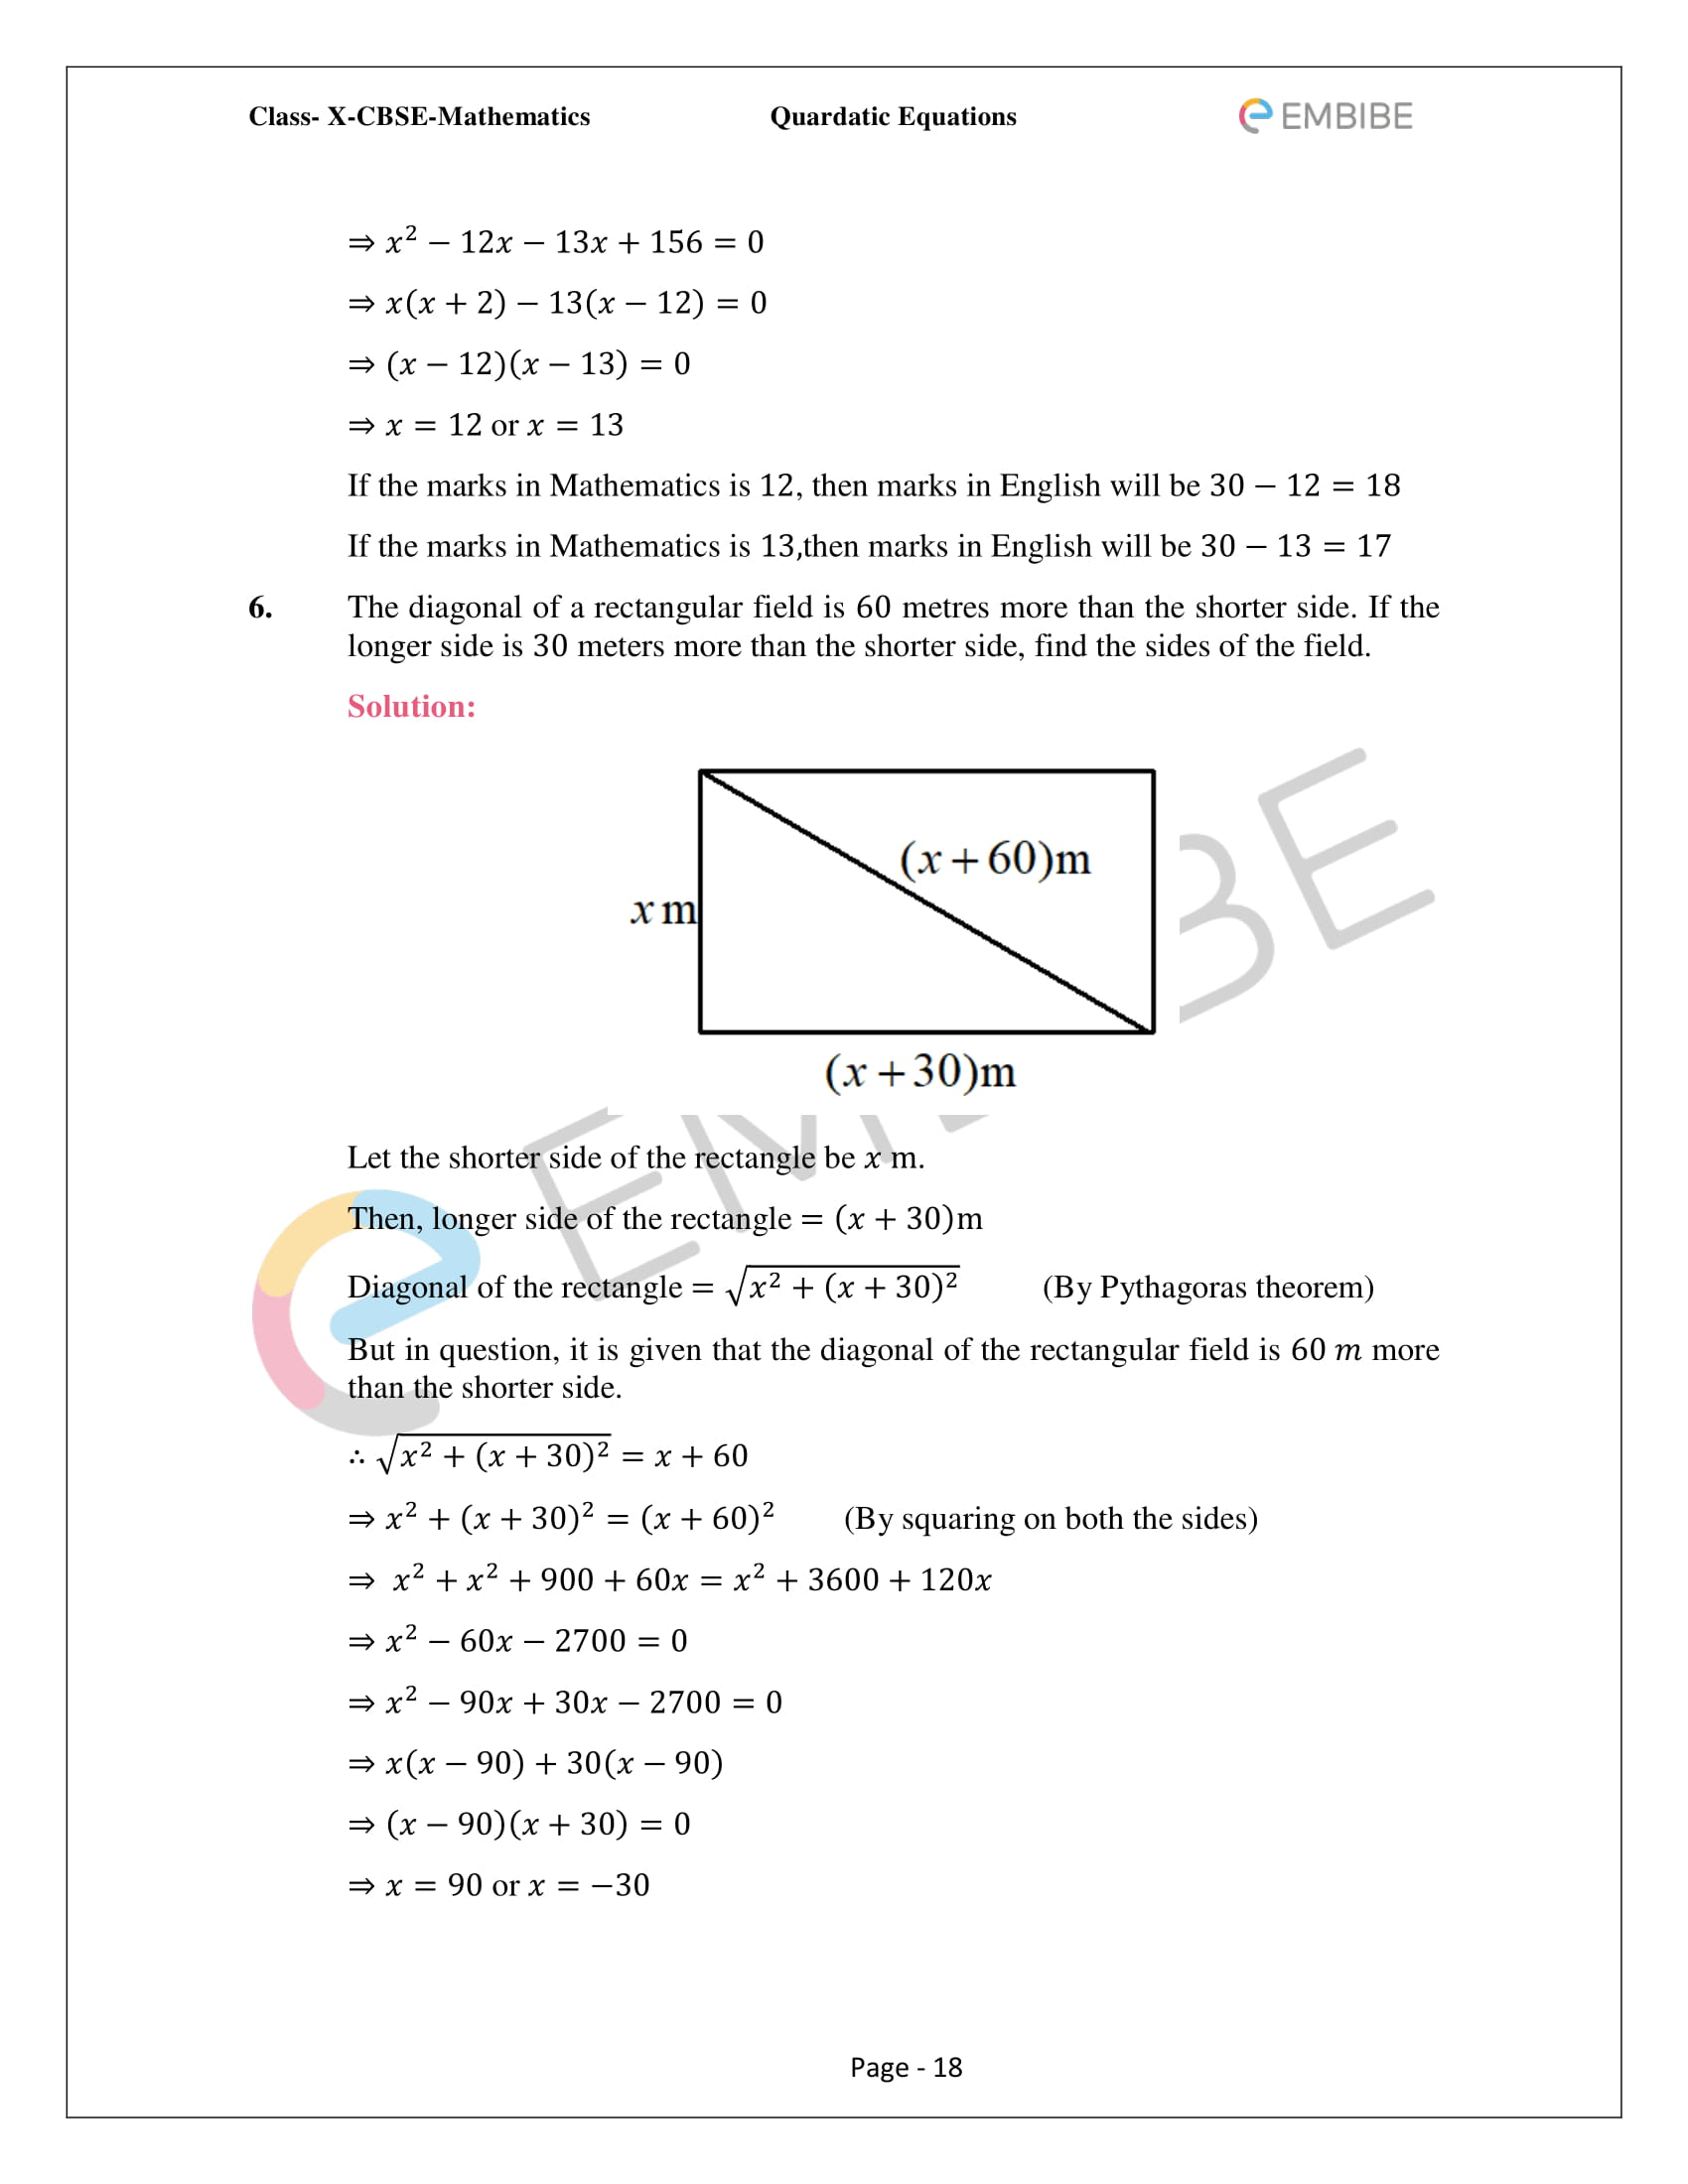 CBSE NCERT Solutions For Class 10 Maths Chapter 4 – Quadratic Equations - 18